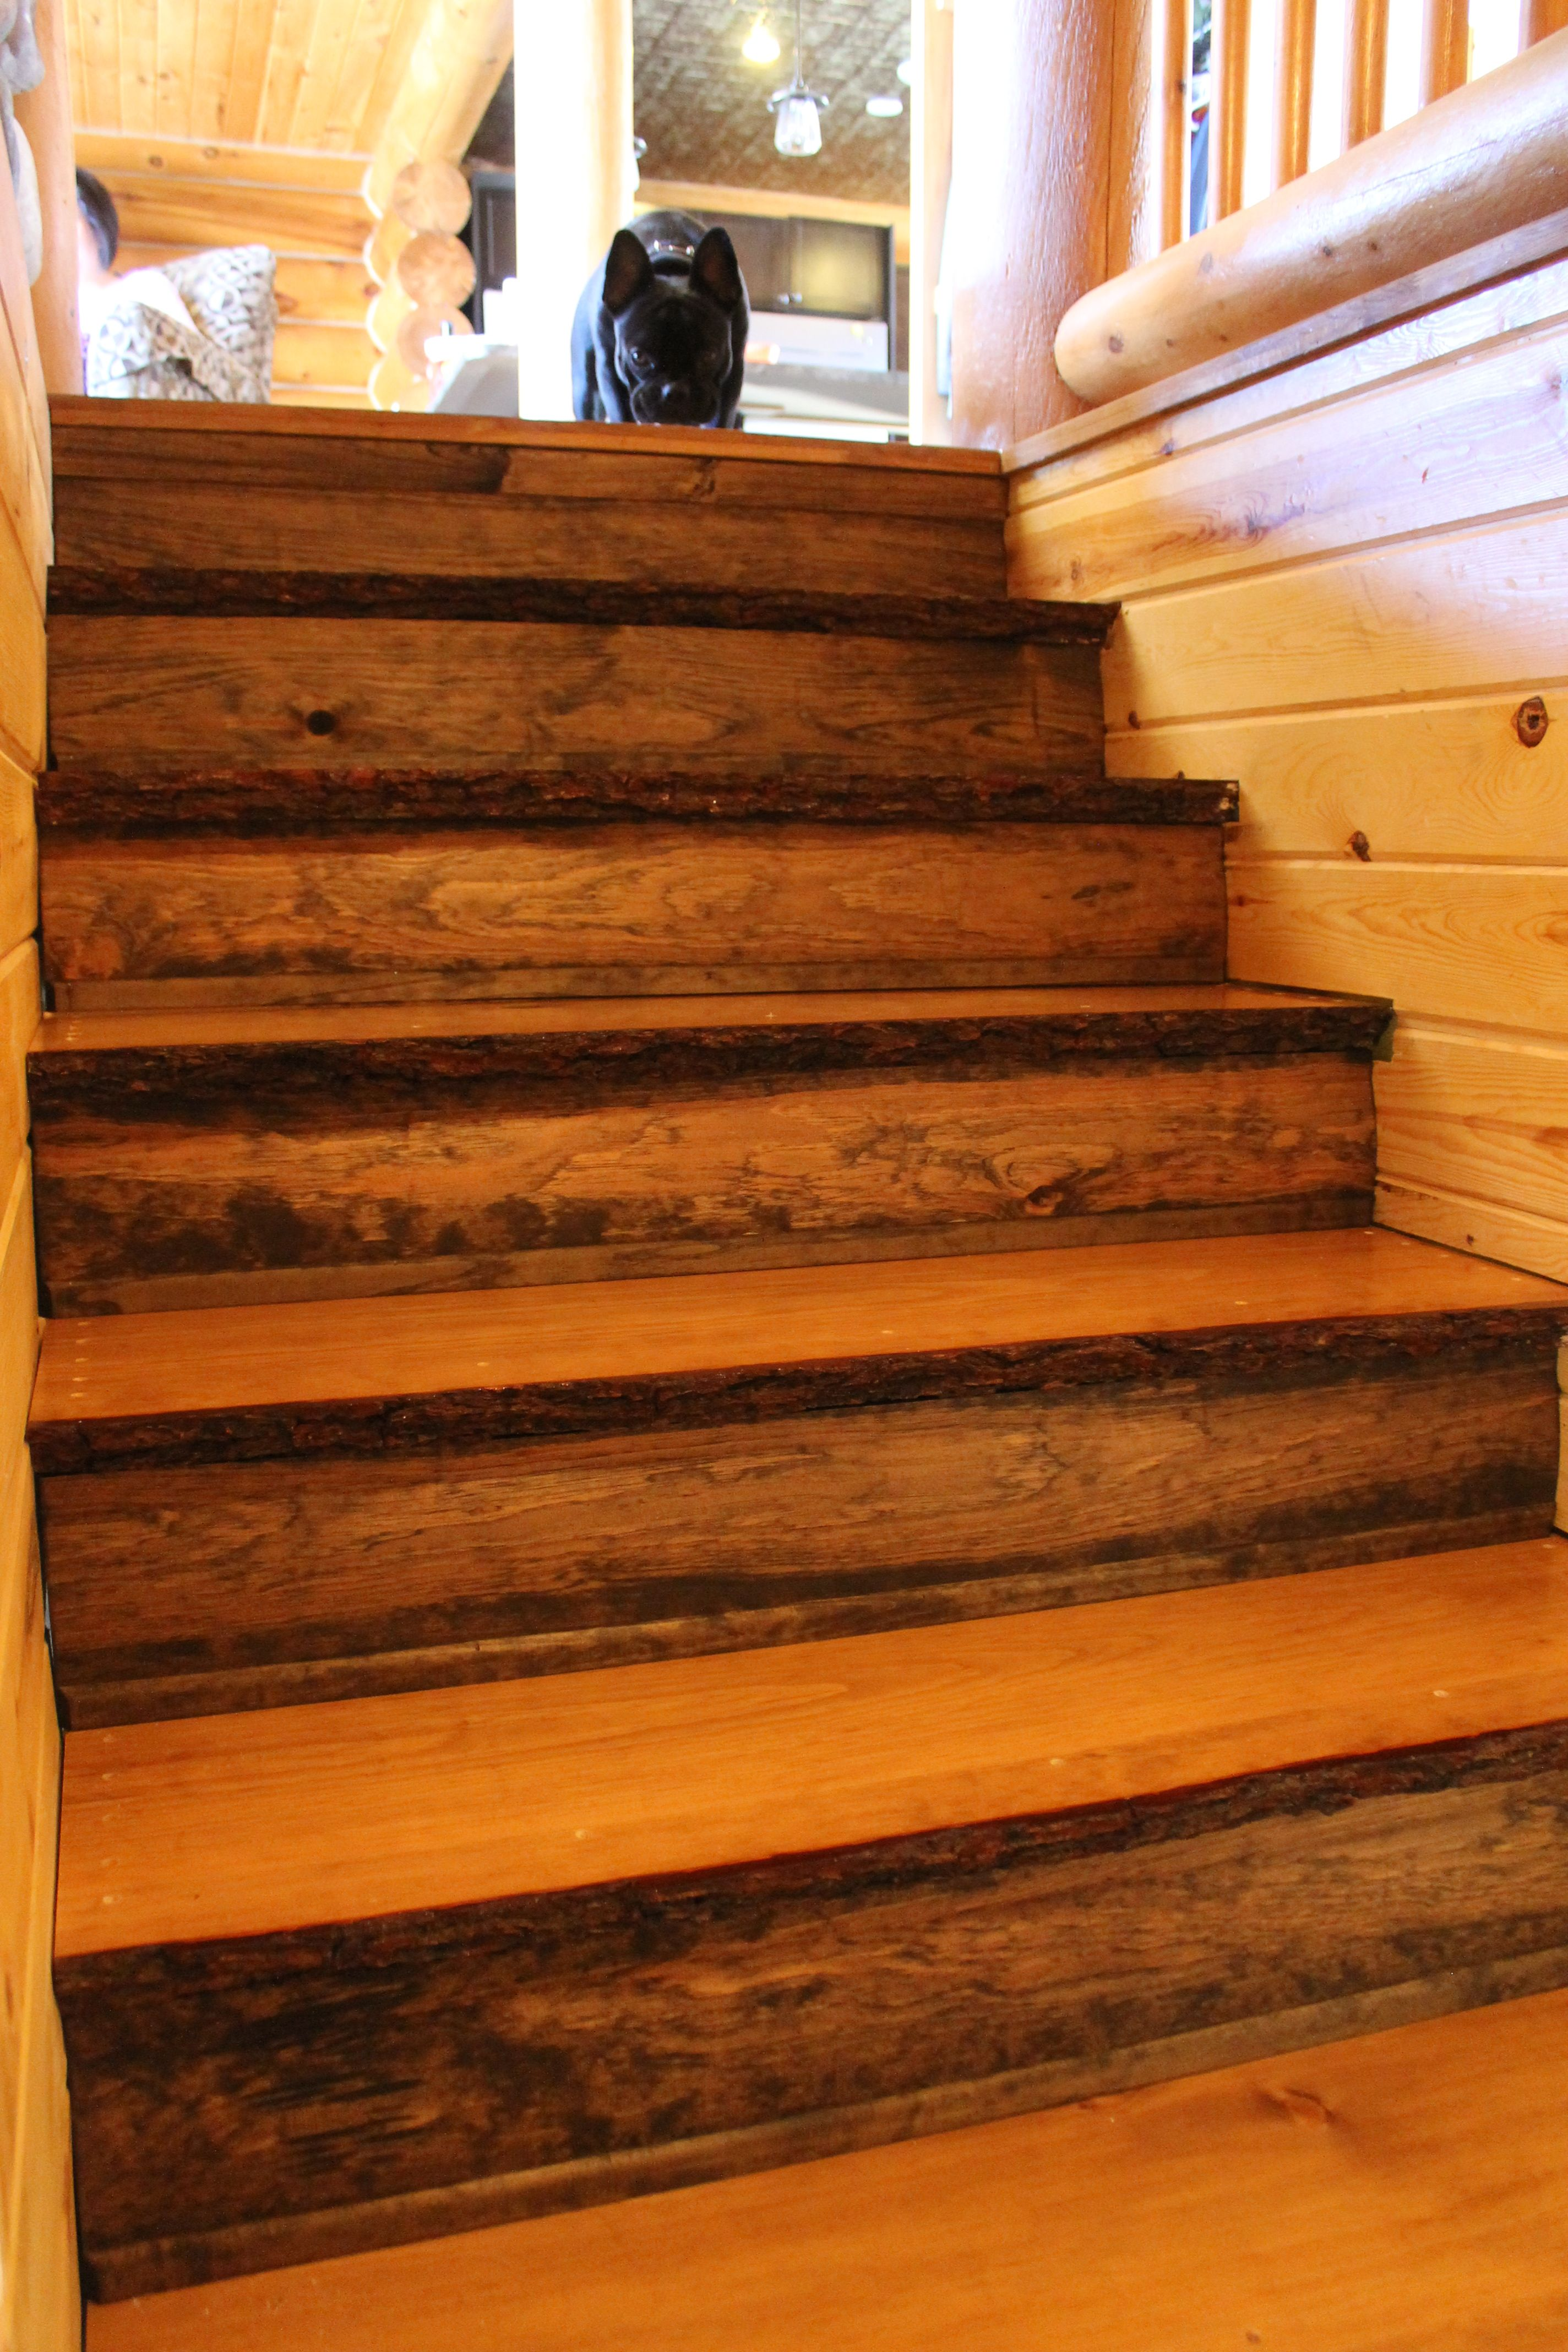 Natural Edge Pine Stair Treads With Log Profile Siding Used As Risers.